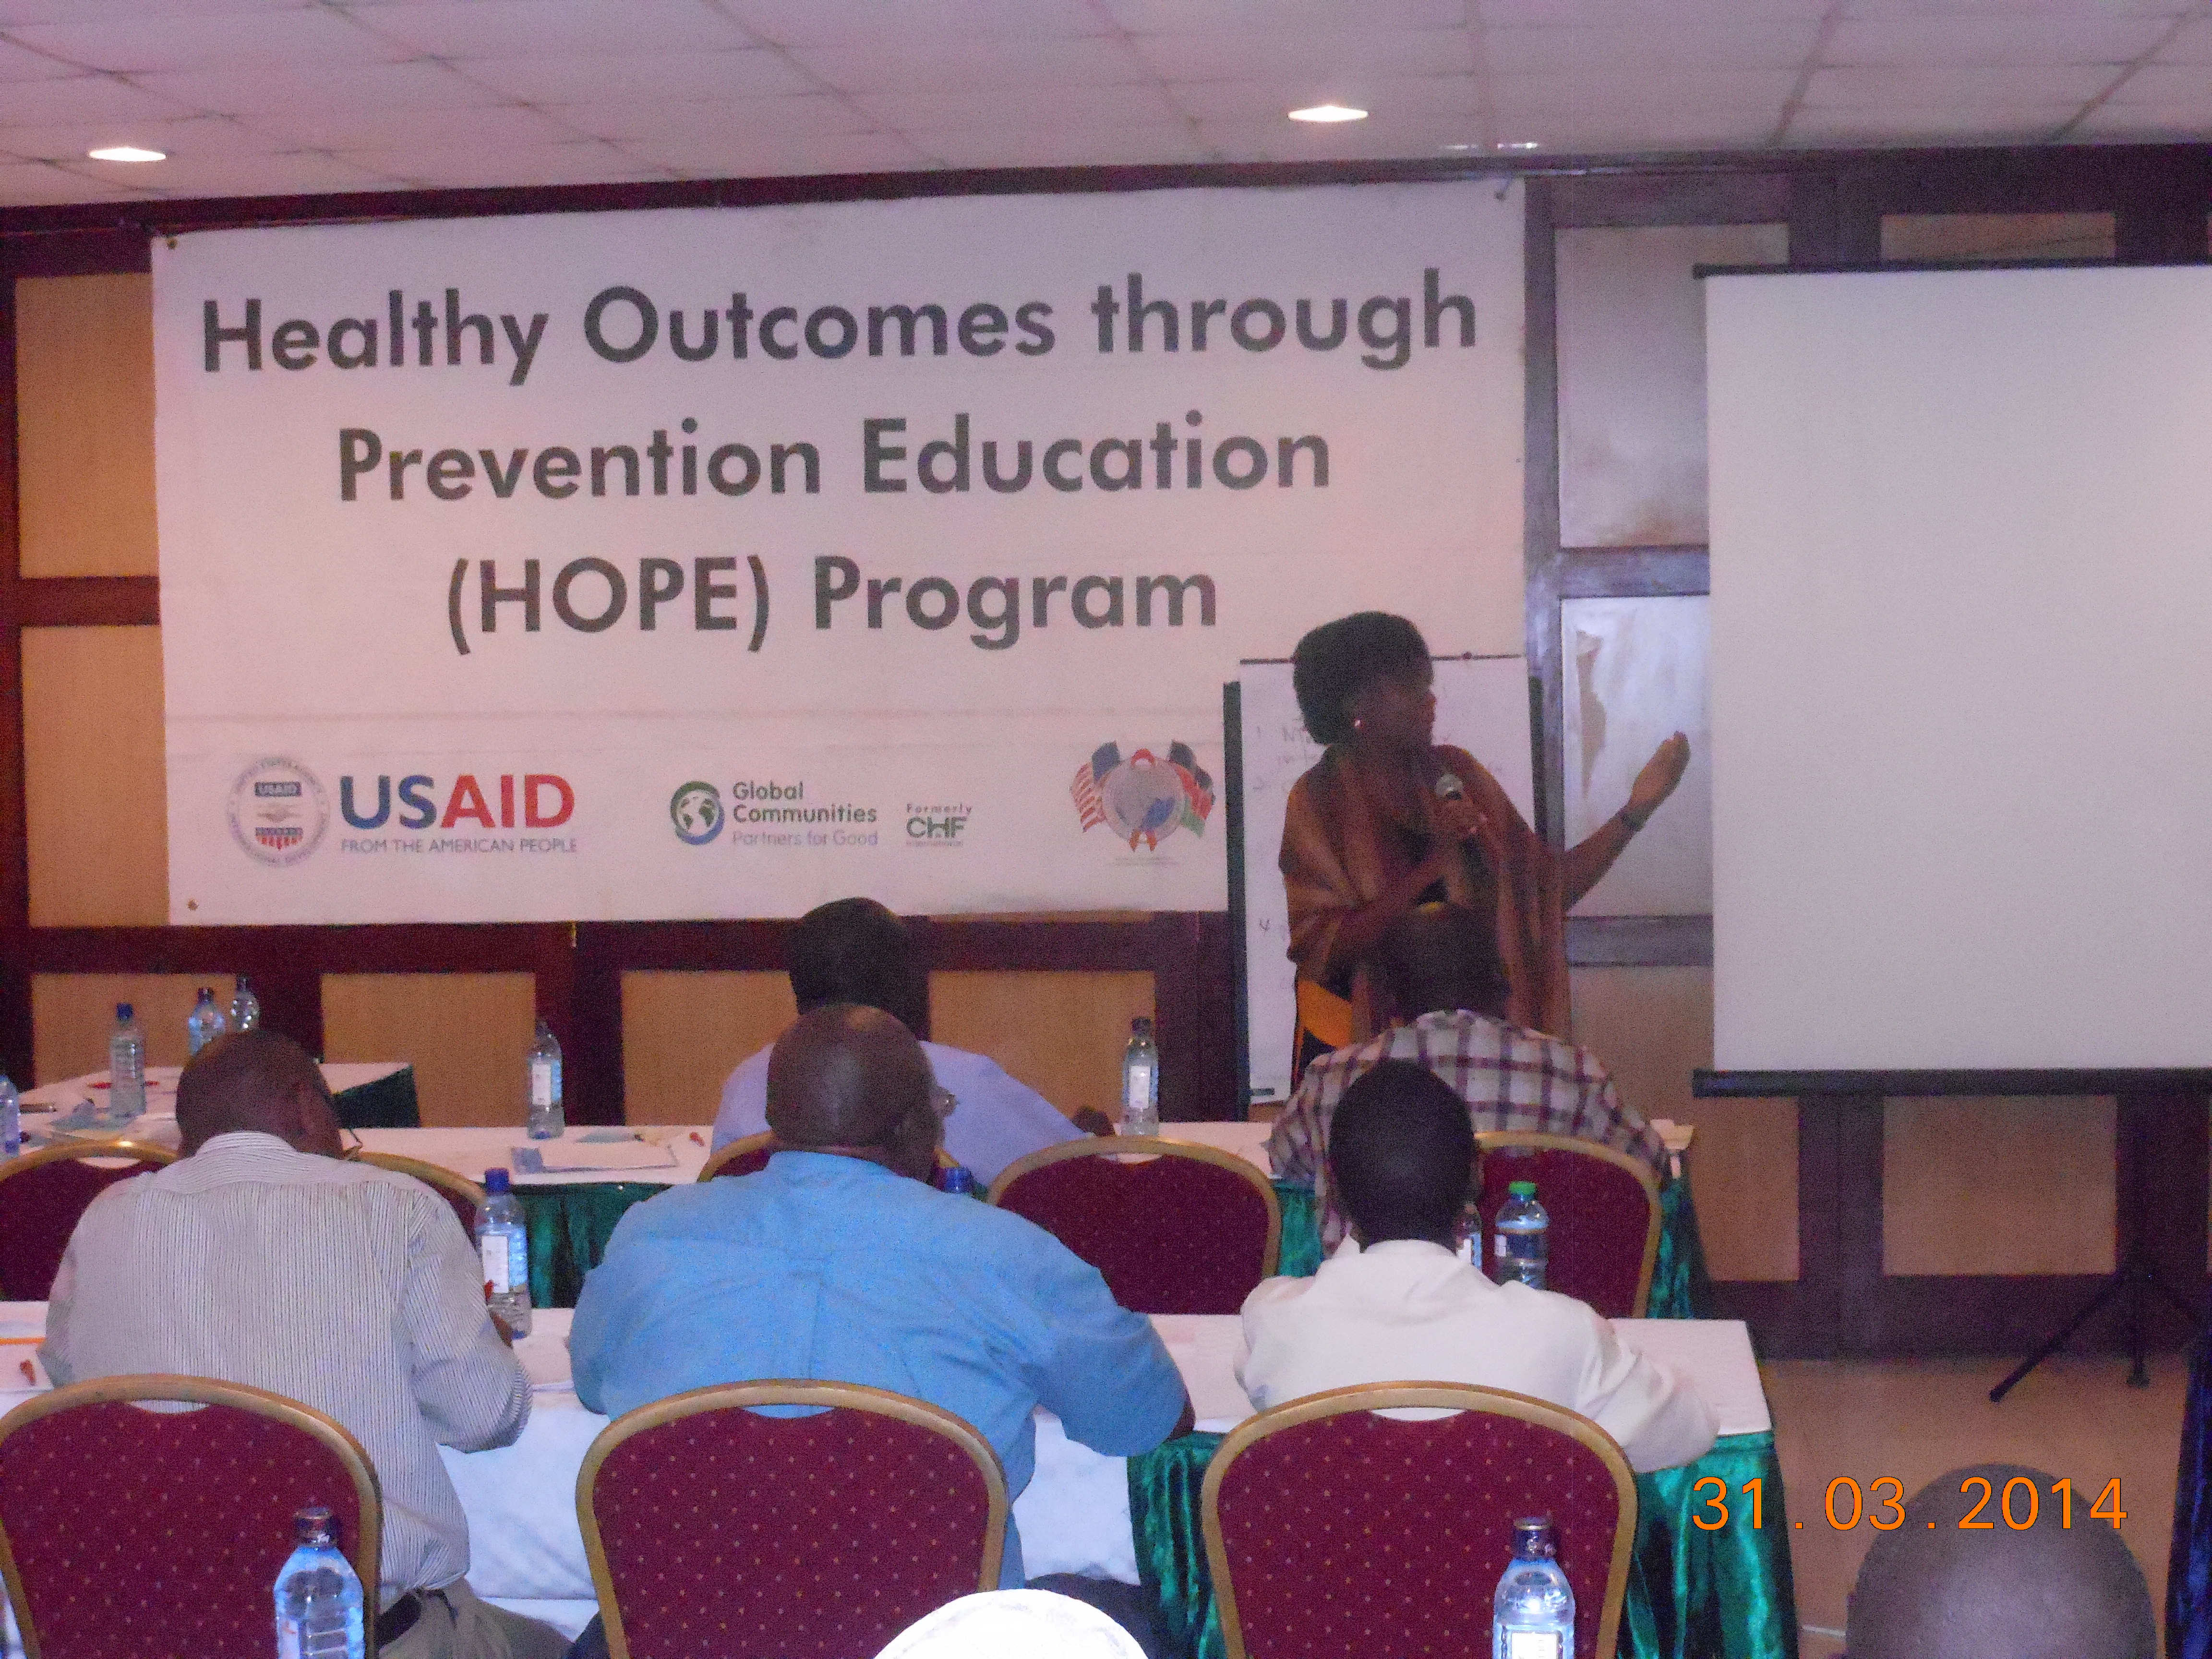 A Kenyan woman addresses an audience while standing in front of a banner that reads Health Outcomes Through Prevention Education